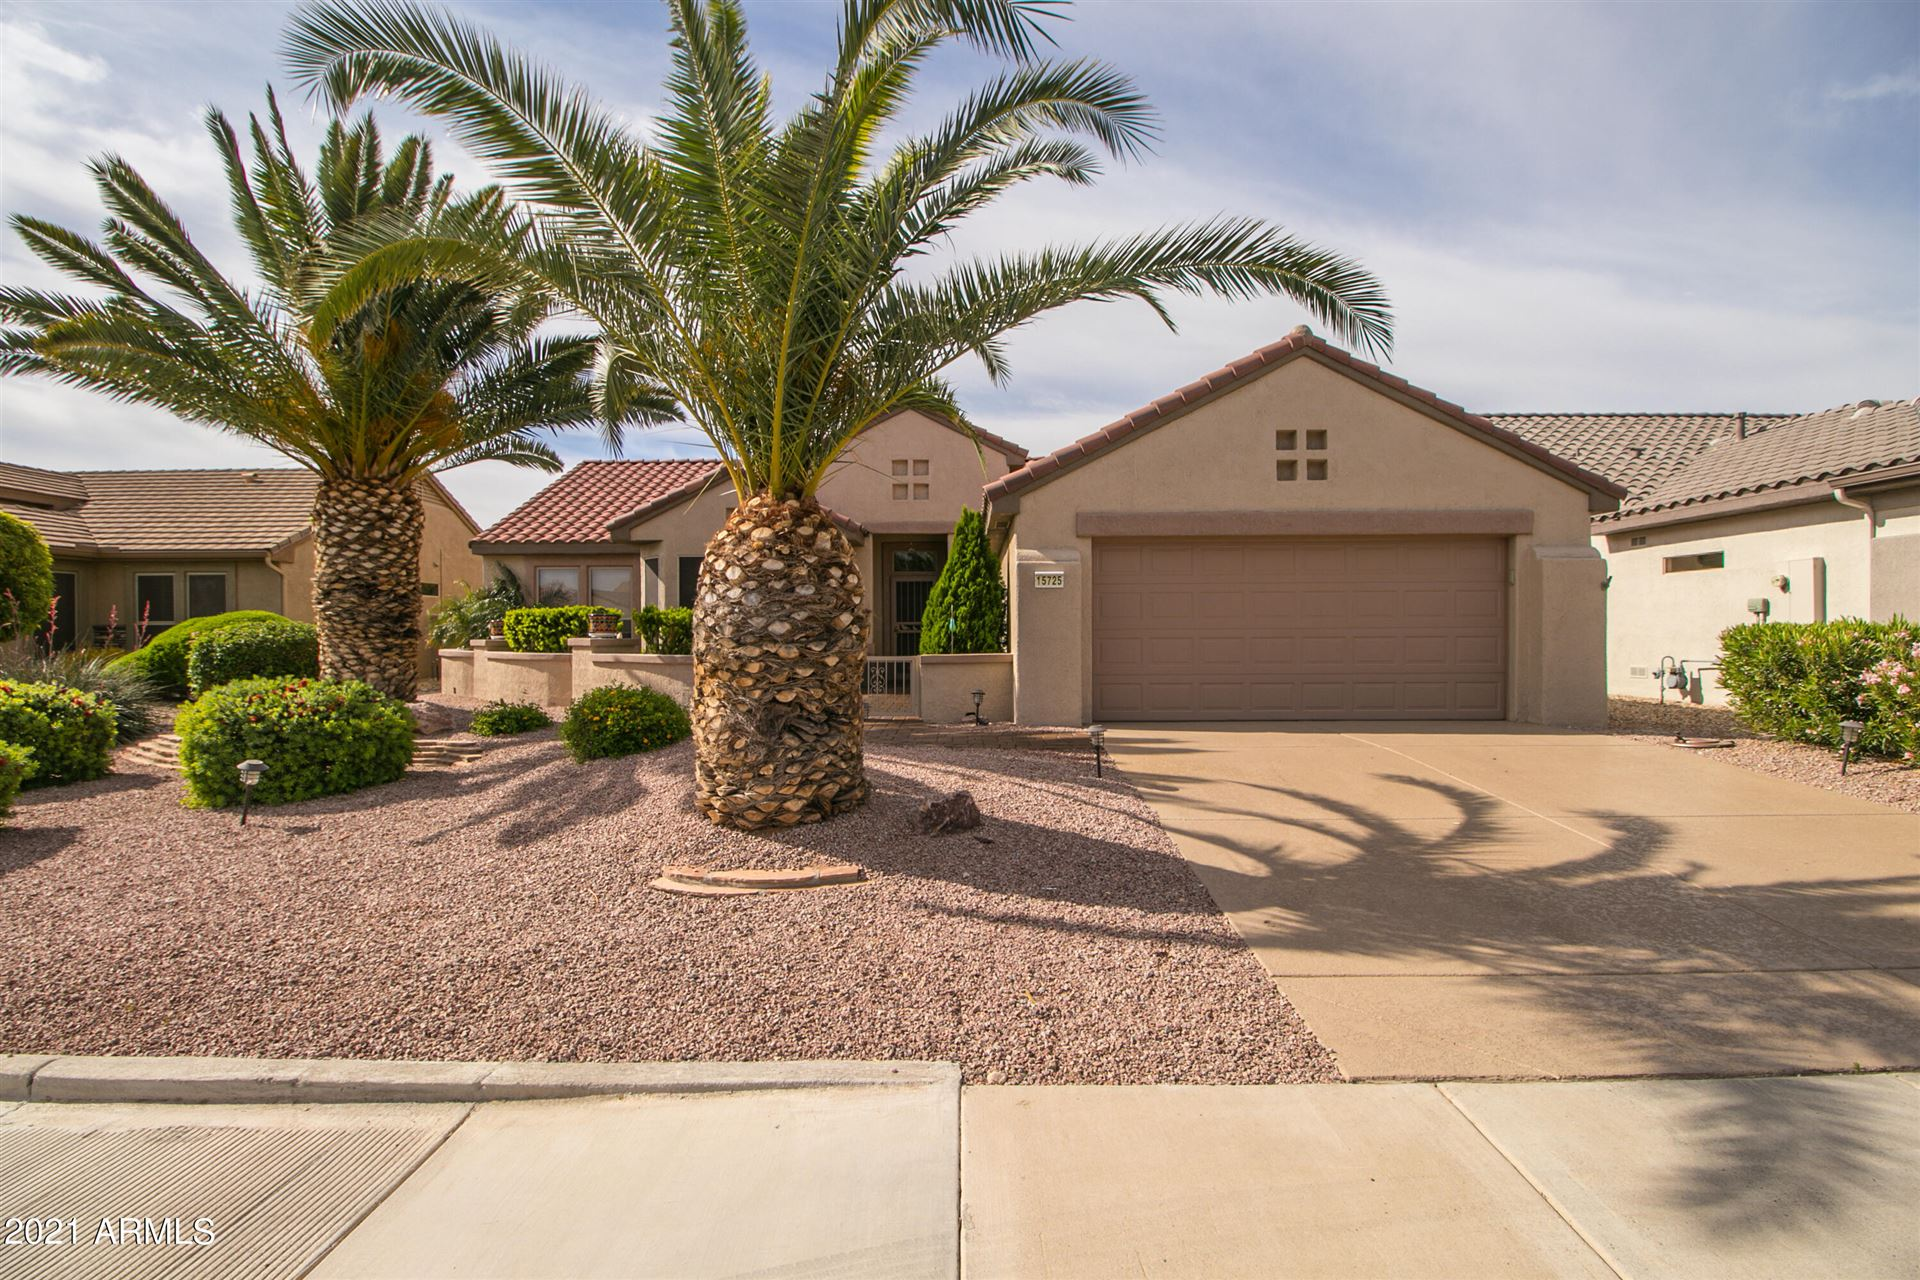 15725 W AUTUMN SAGE Drive, Surprise, AZ 85374 - MLS#: 6223674